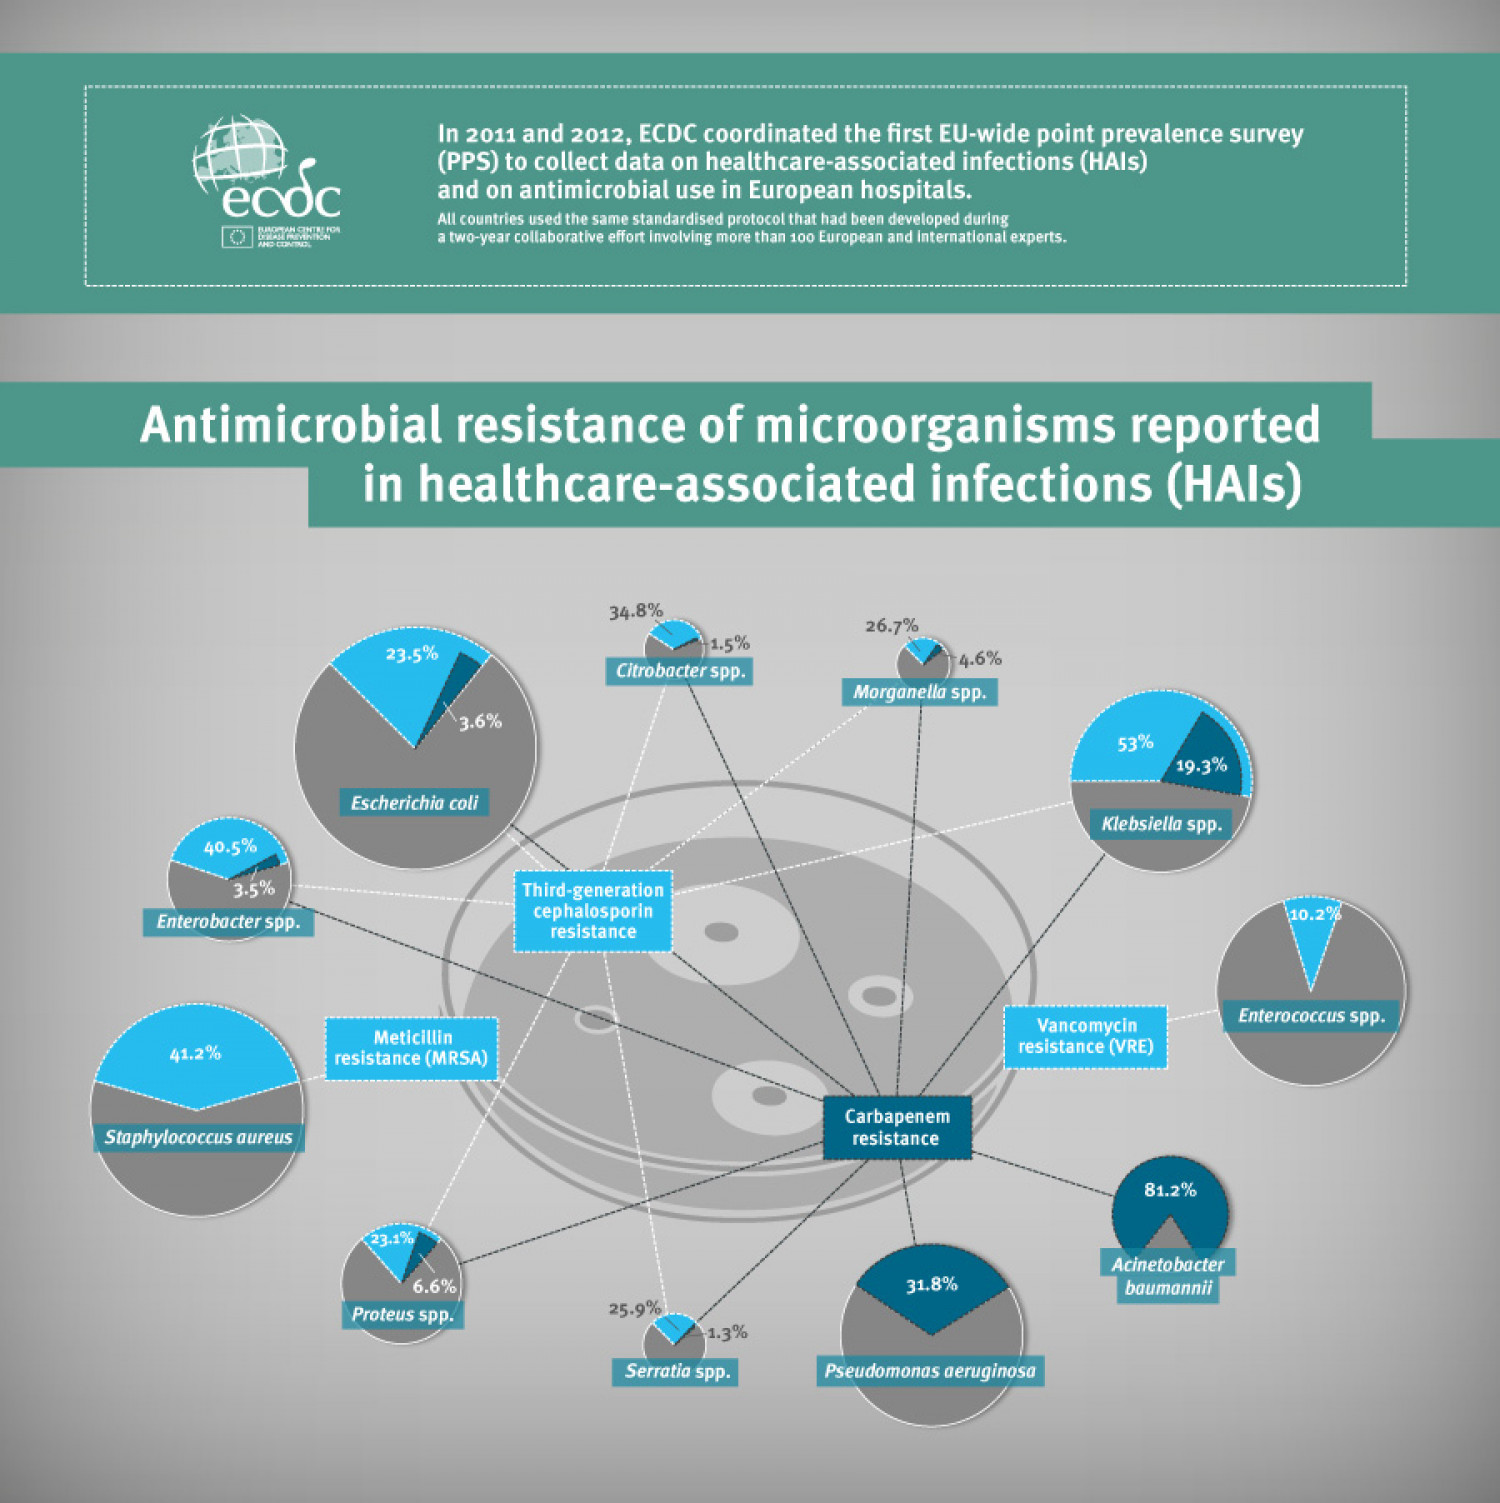 Antimicrobial resistance in European Hospitals Infographic